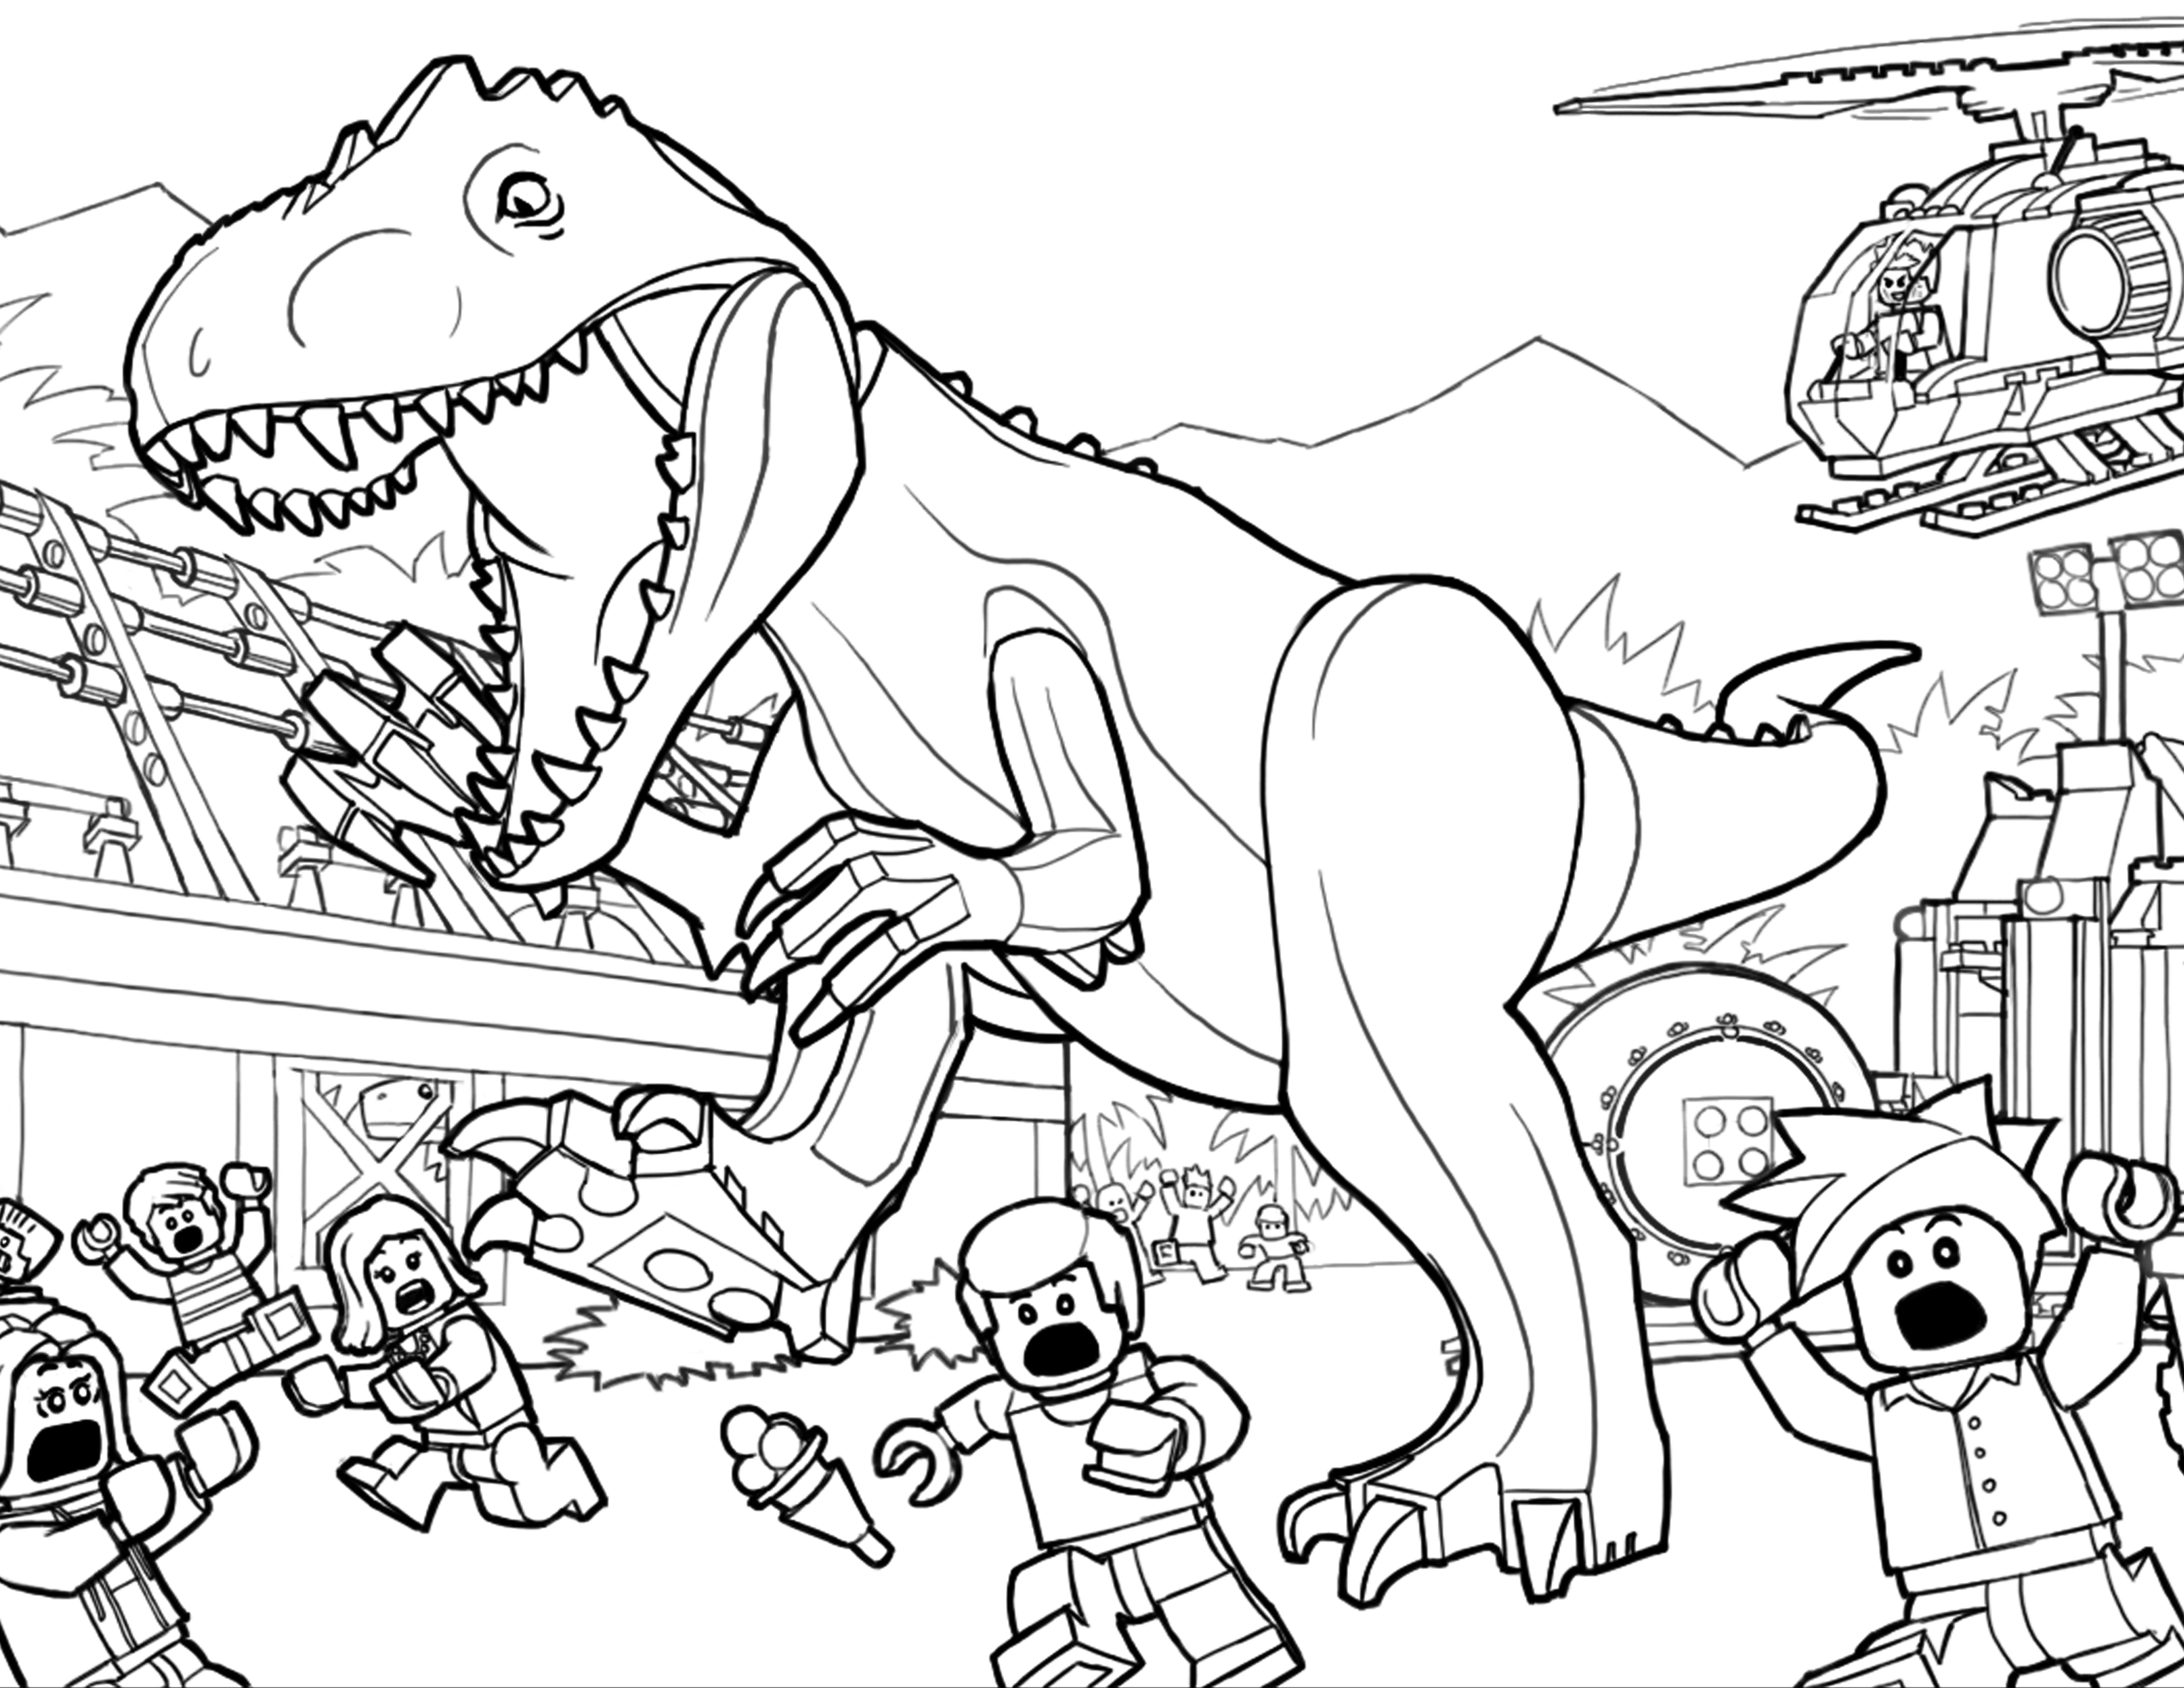 t rex printable angry tyrannosaurus rex coloring pages for kids printable rex t printable